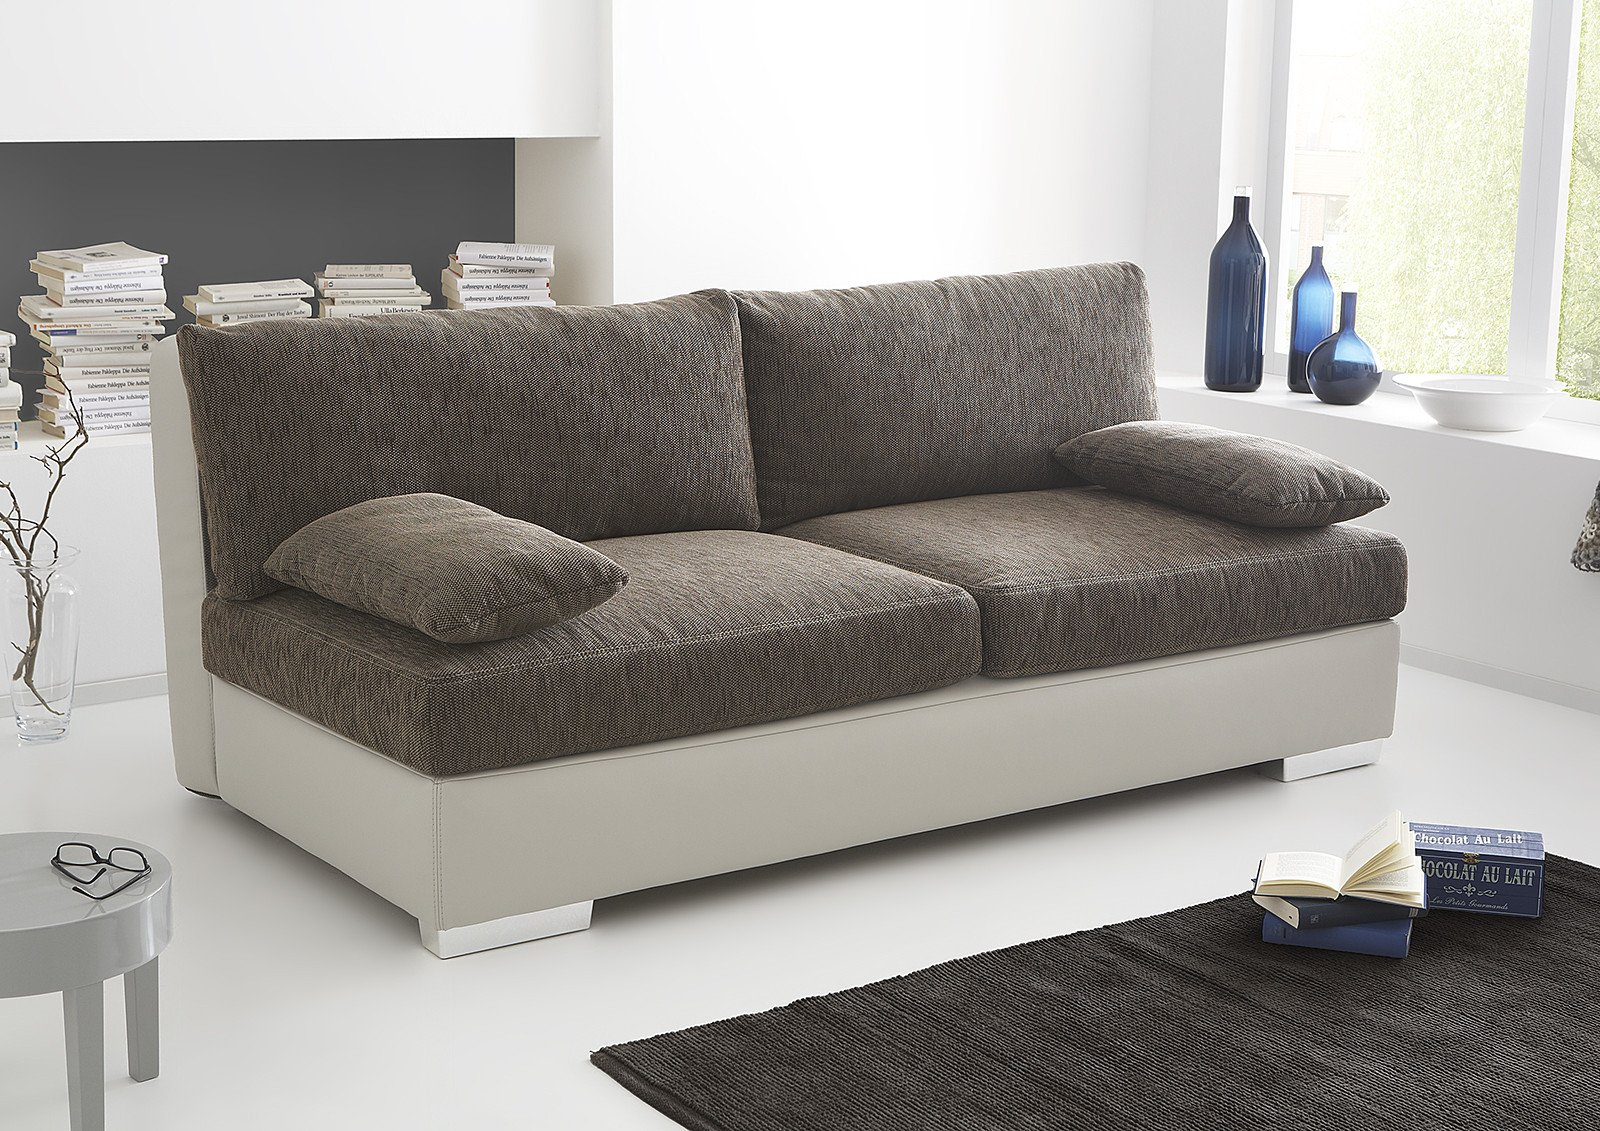 schlafsofa dorset in braun beige von jockenh fer m bel letz ihr online shop. Black Bedroom Furniture Sets. Home Design Ideas